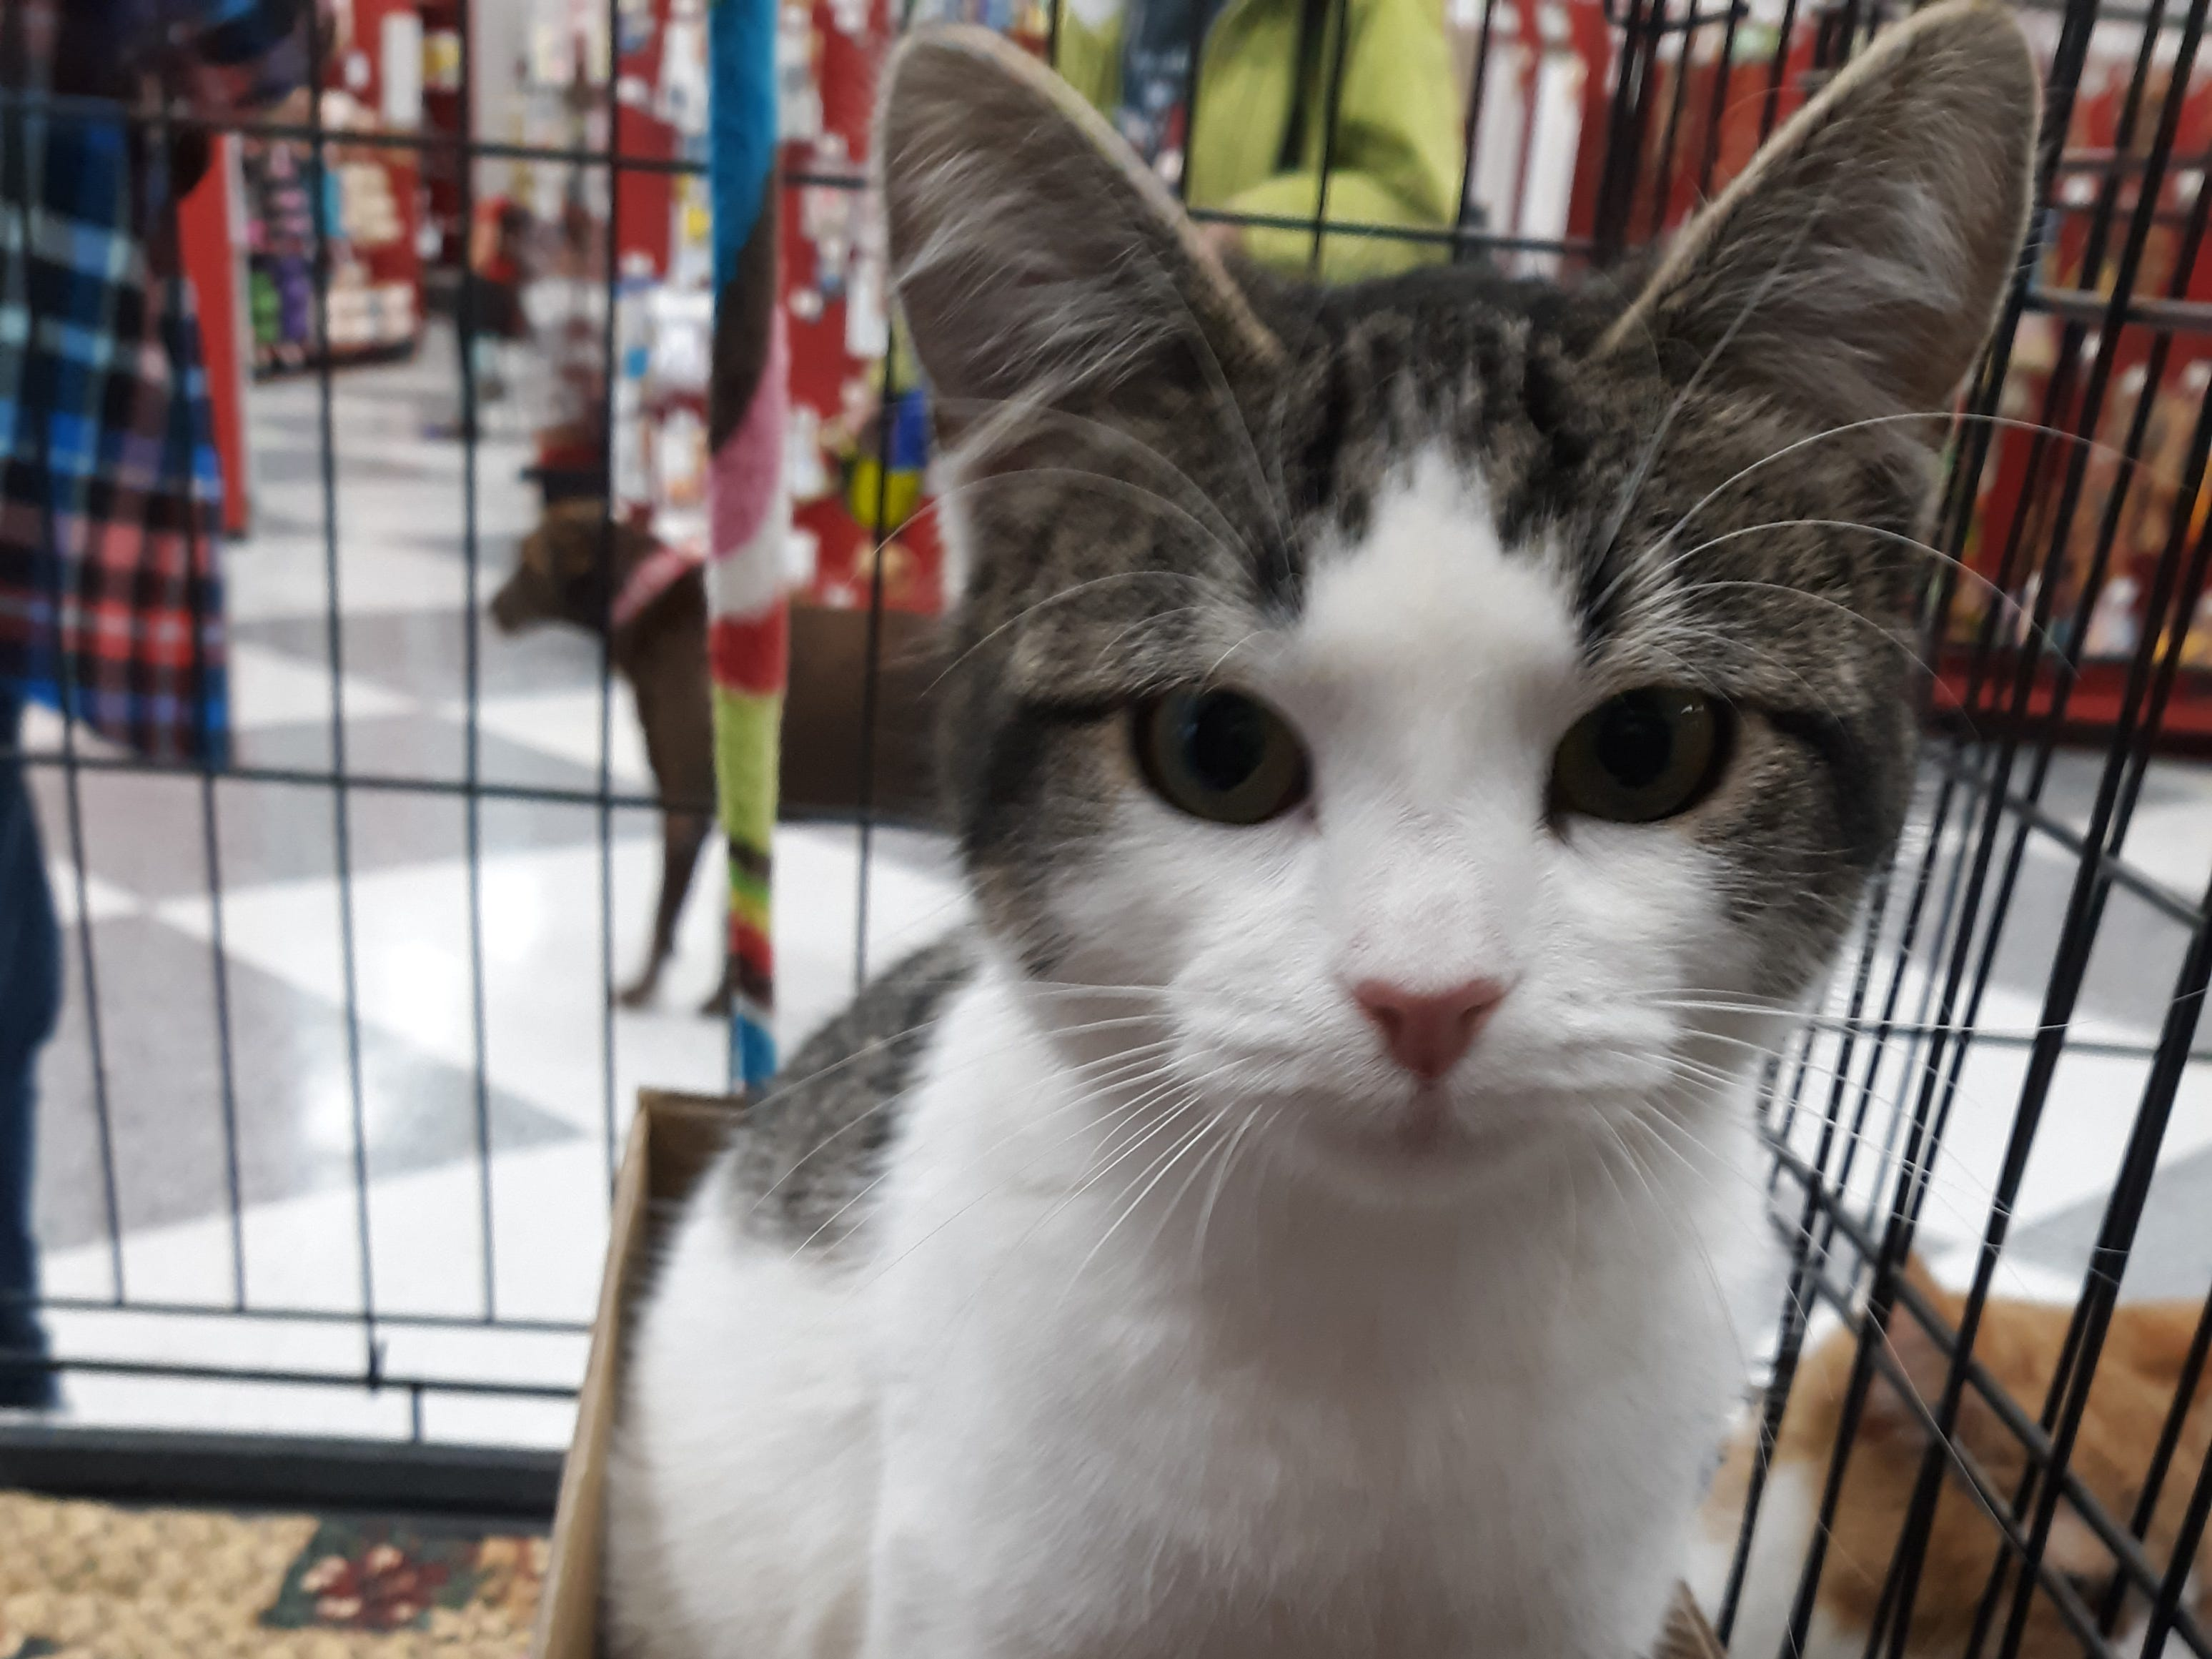 Dayna is a 6-month-old female kitten with tabby and white fur. She's very affectionate and playful. All animal adoptions include spaying or neutering and vaccinations. Apply with Another Chance Animal Welfare League at www.acawl.org. Call 356-0698.